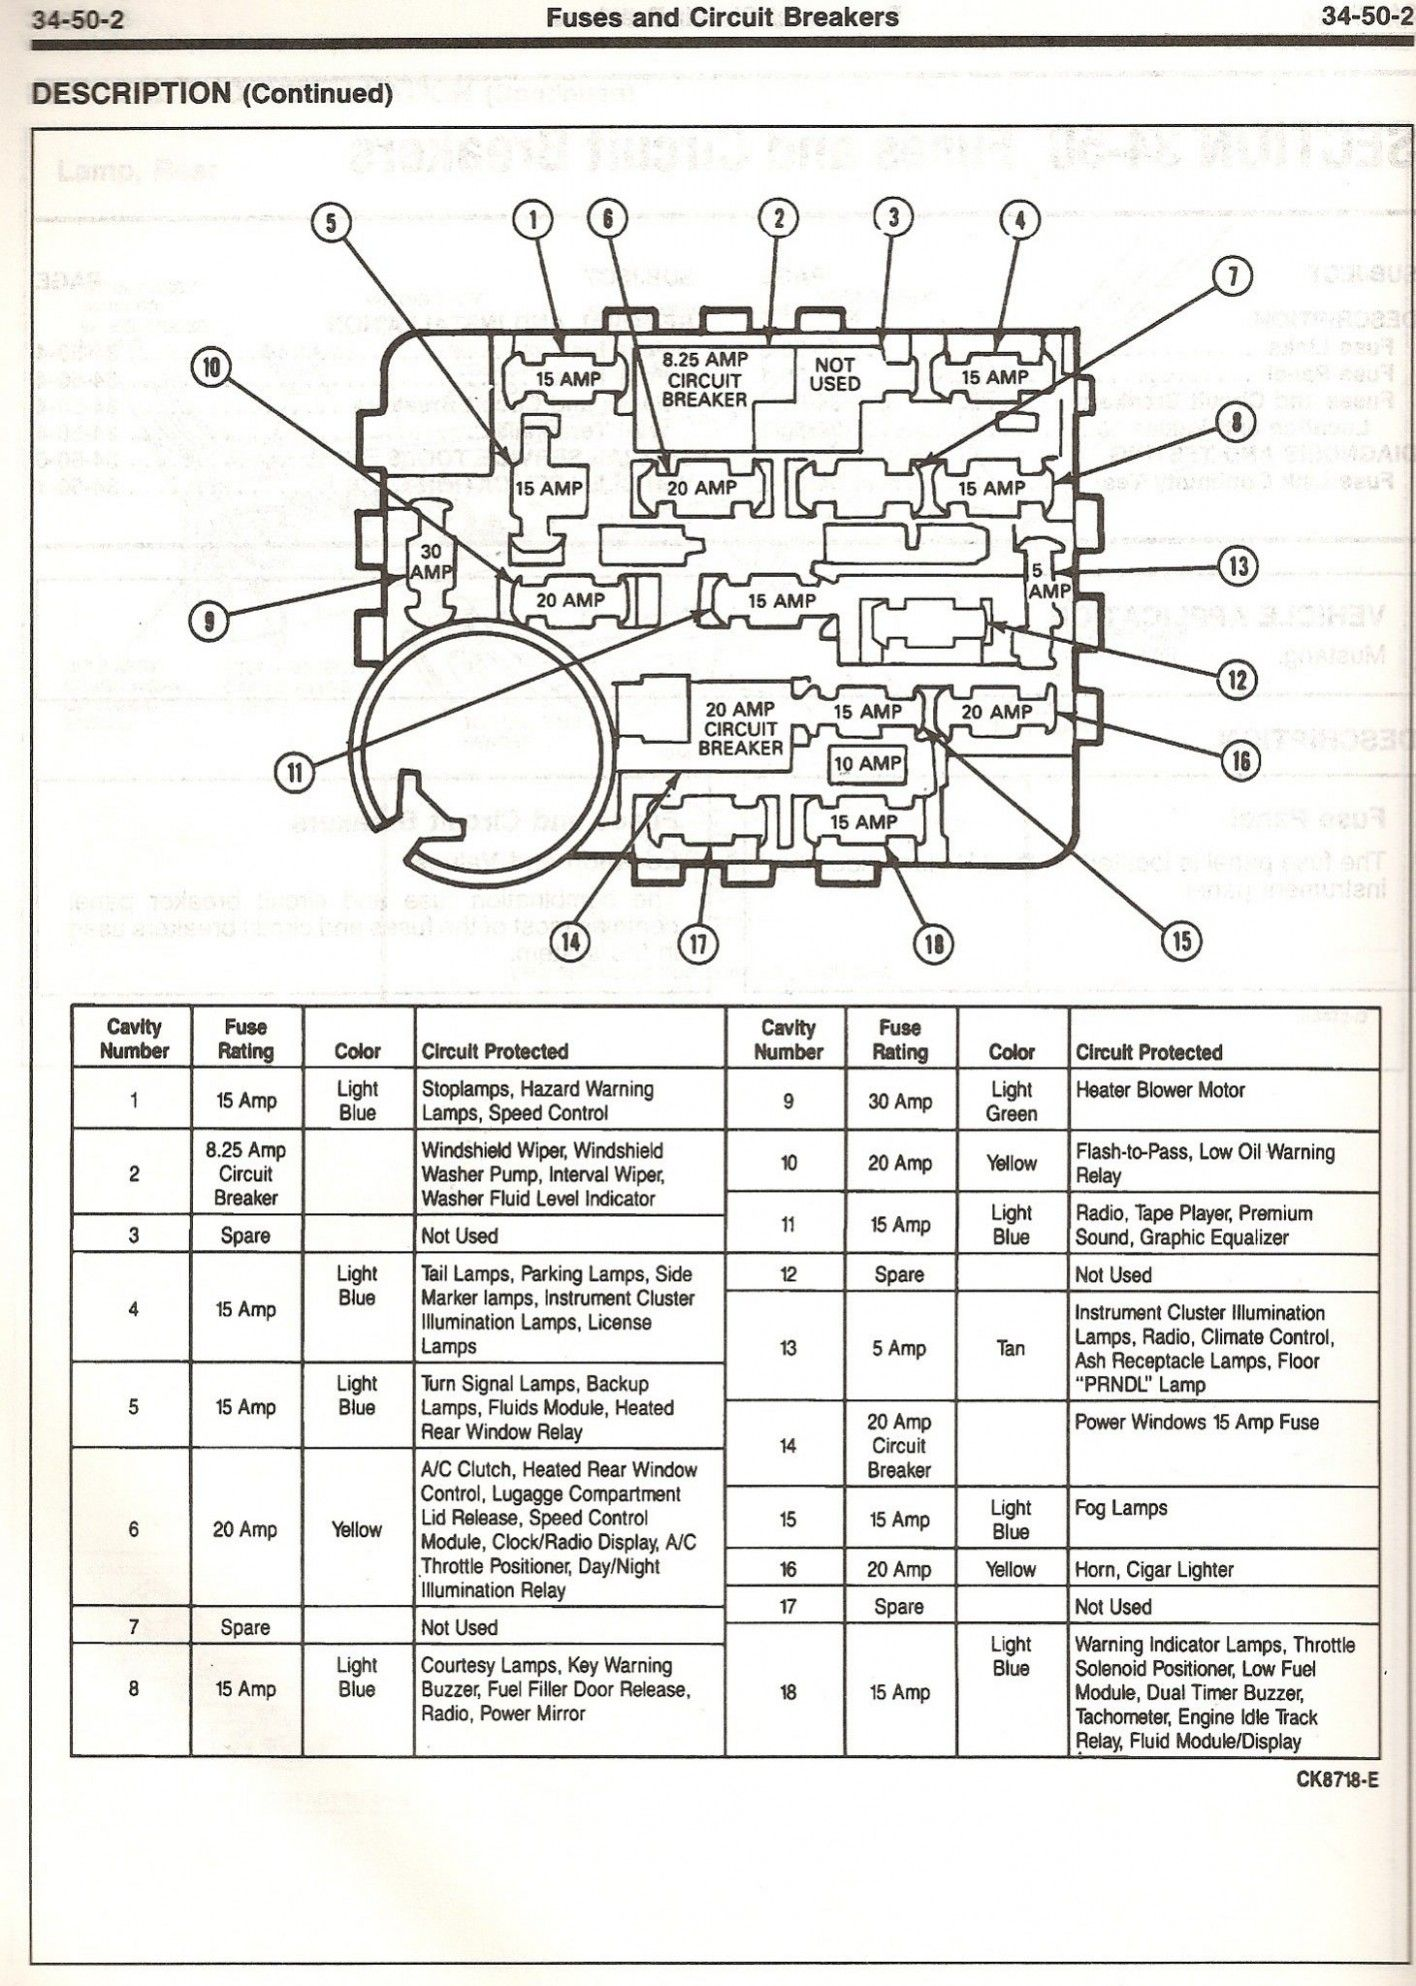 Z8 Engine Diagram Chart di 2020